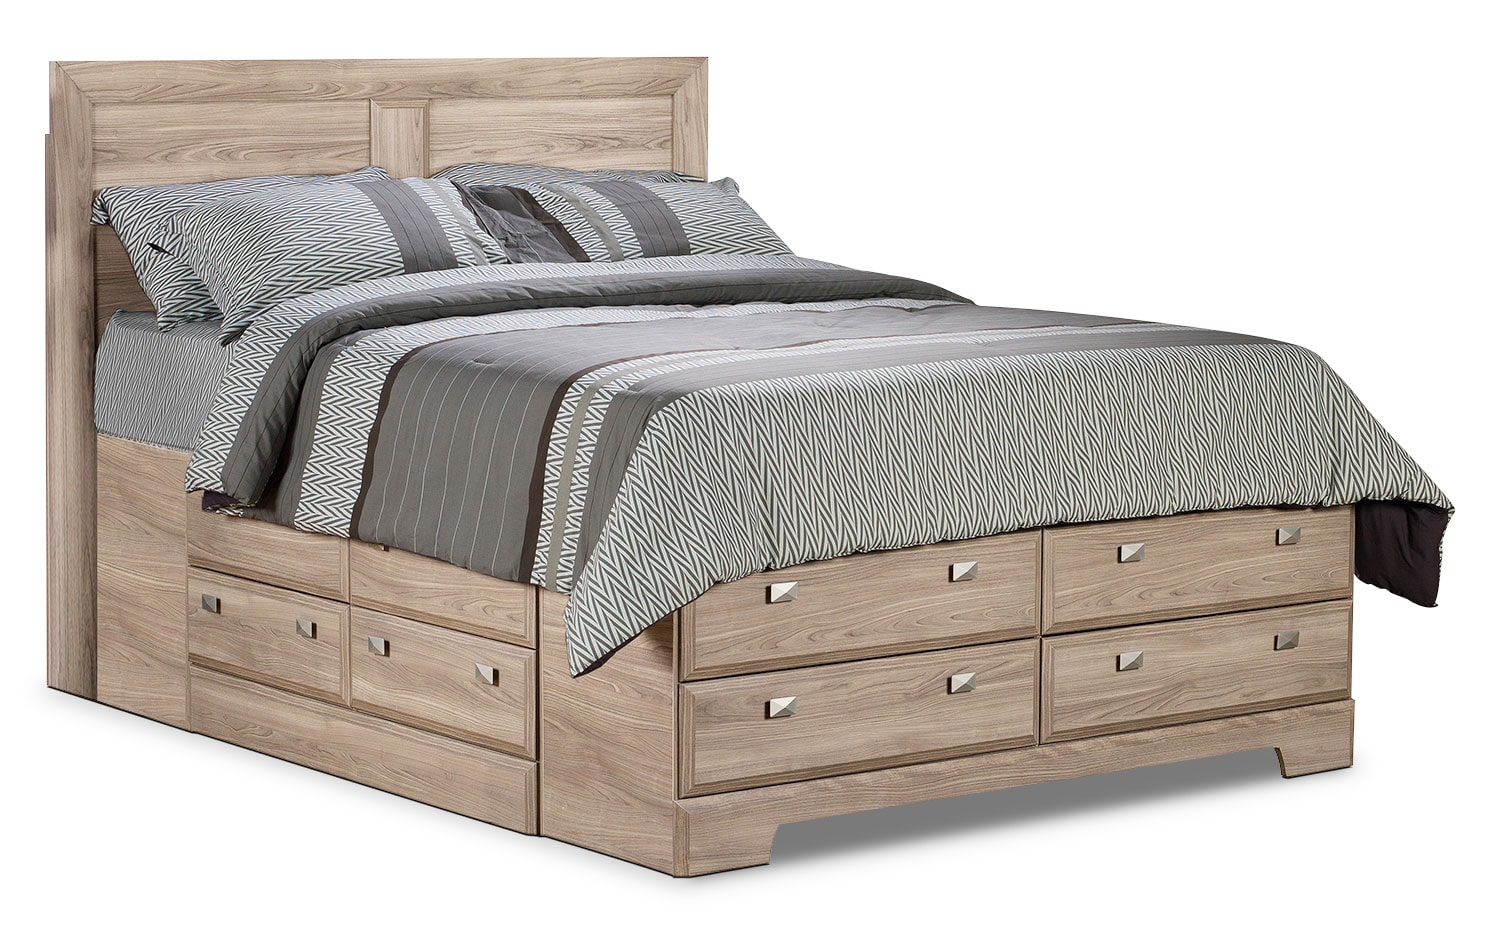 Yorkdale light queen storage bed the brick for Bedroom furniture queen storage bed